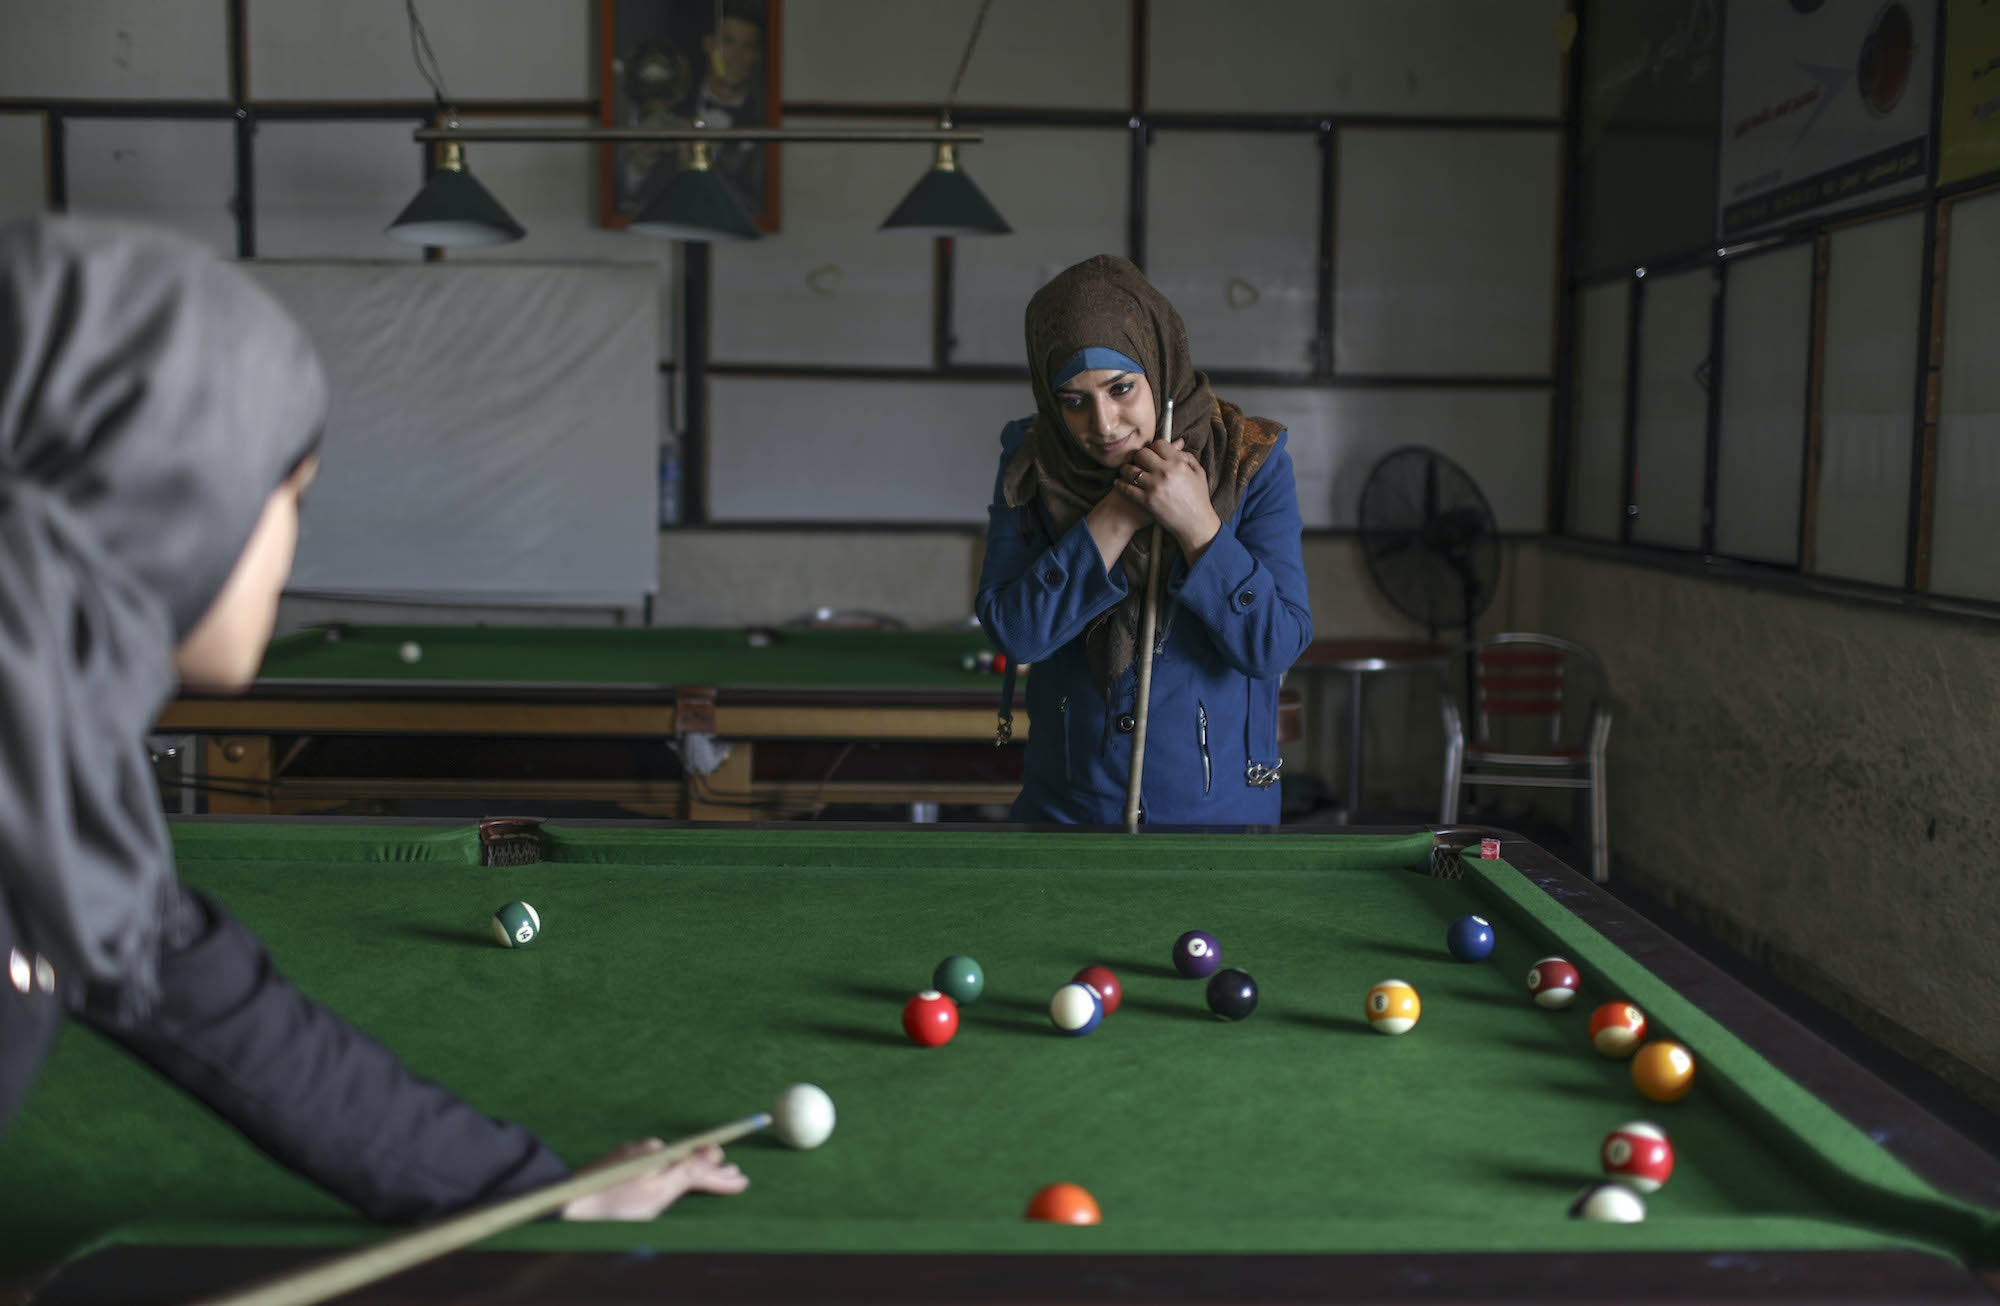 Palestinian girls play pool at a café in Gaza.